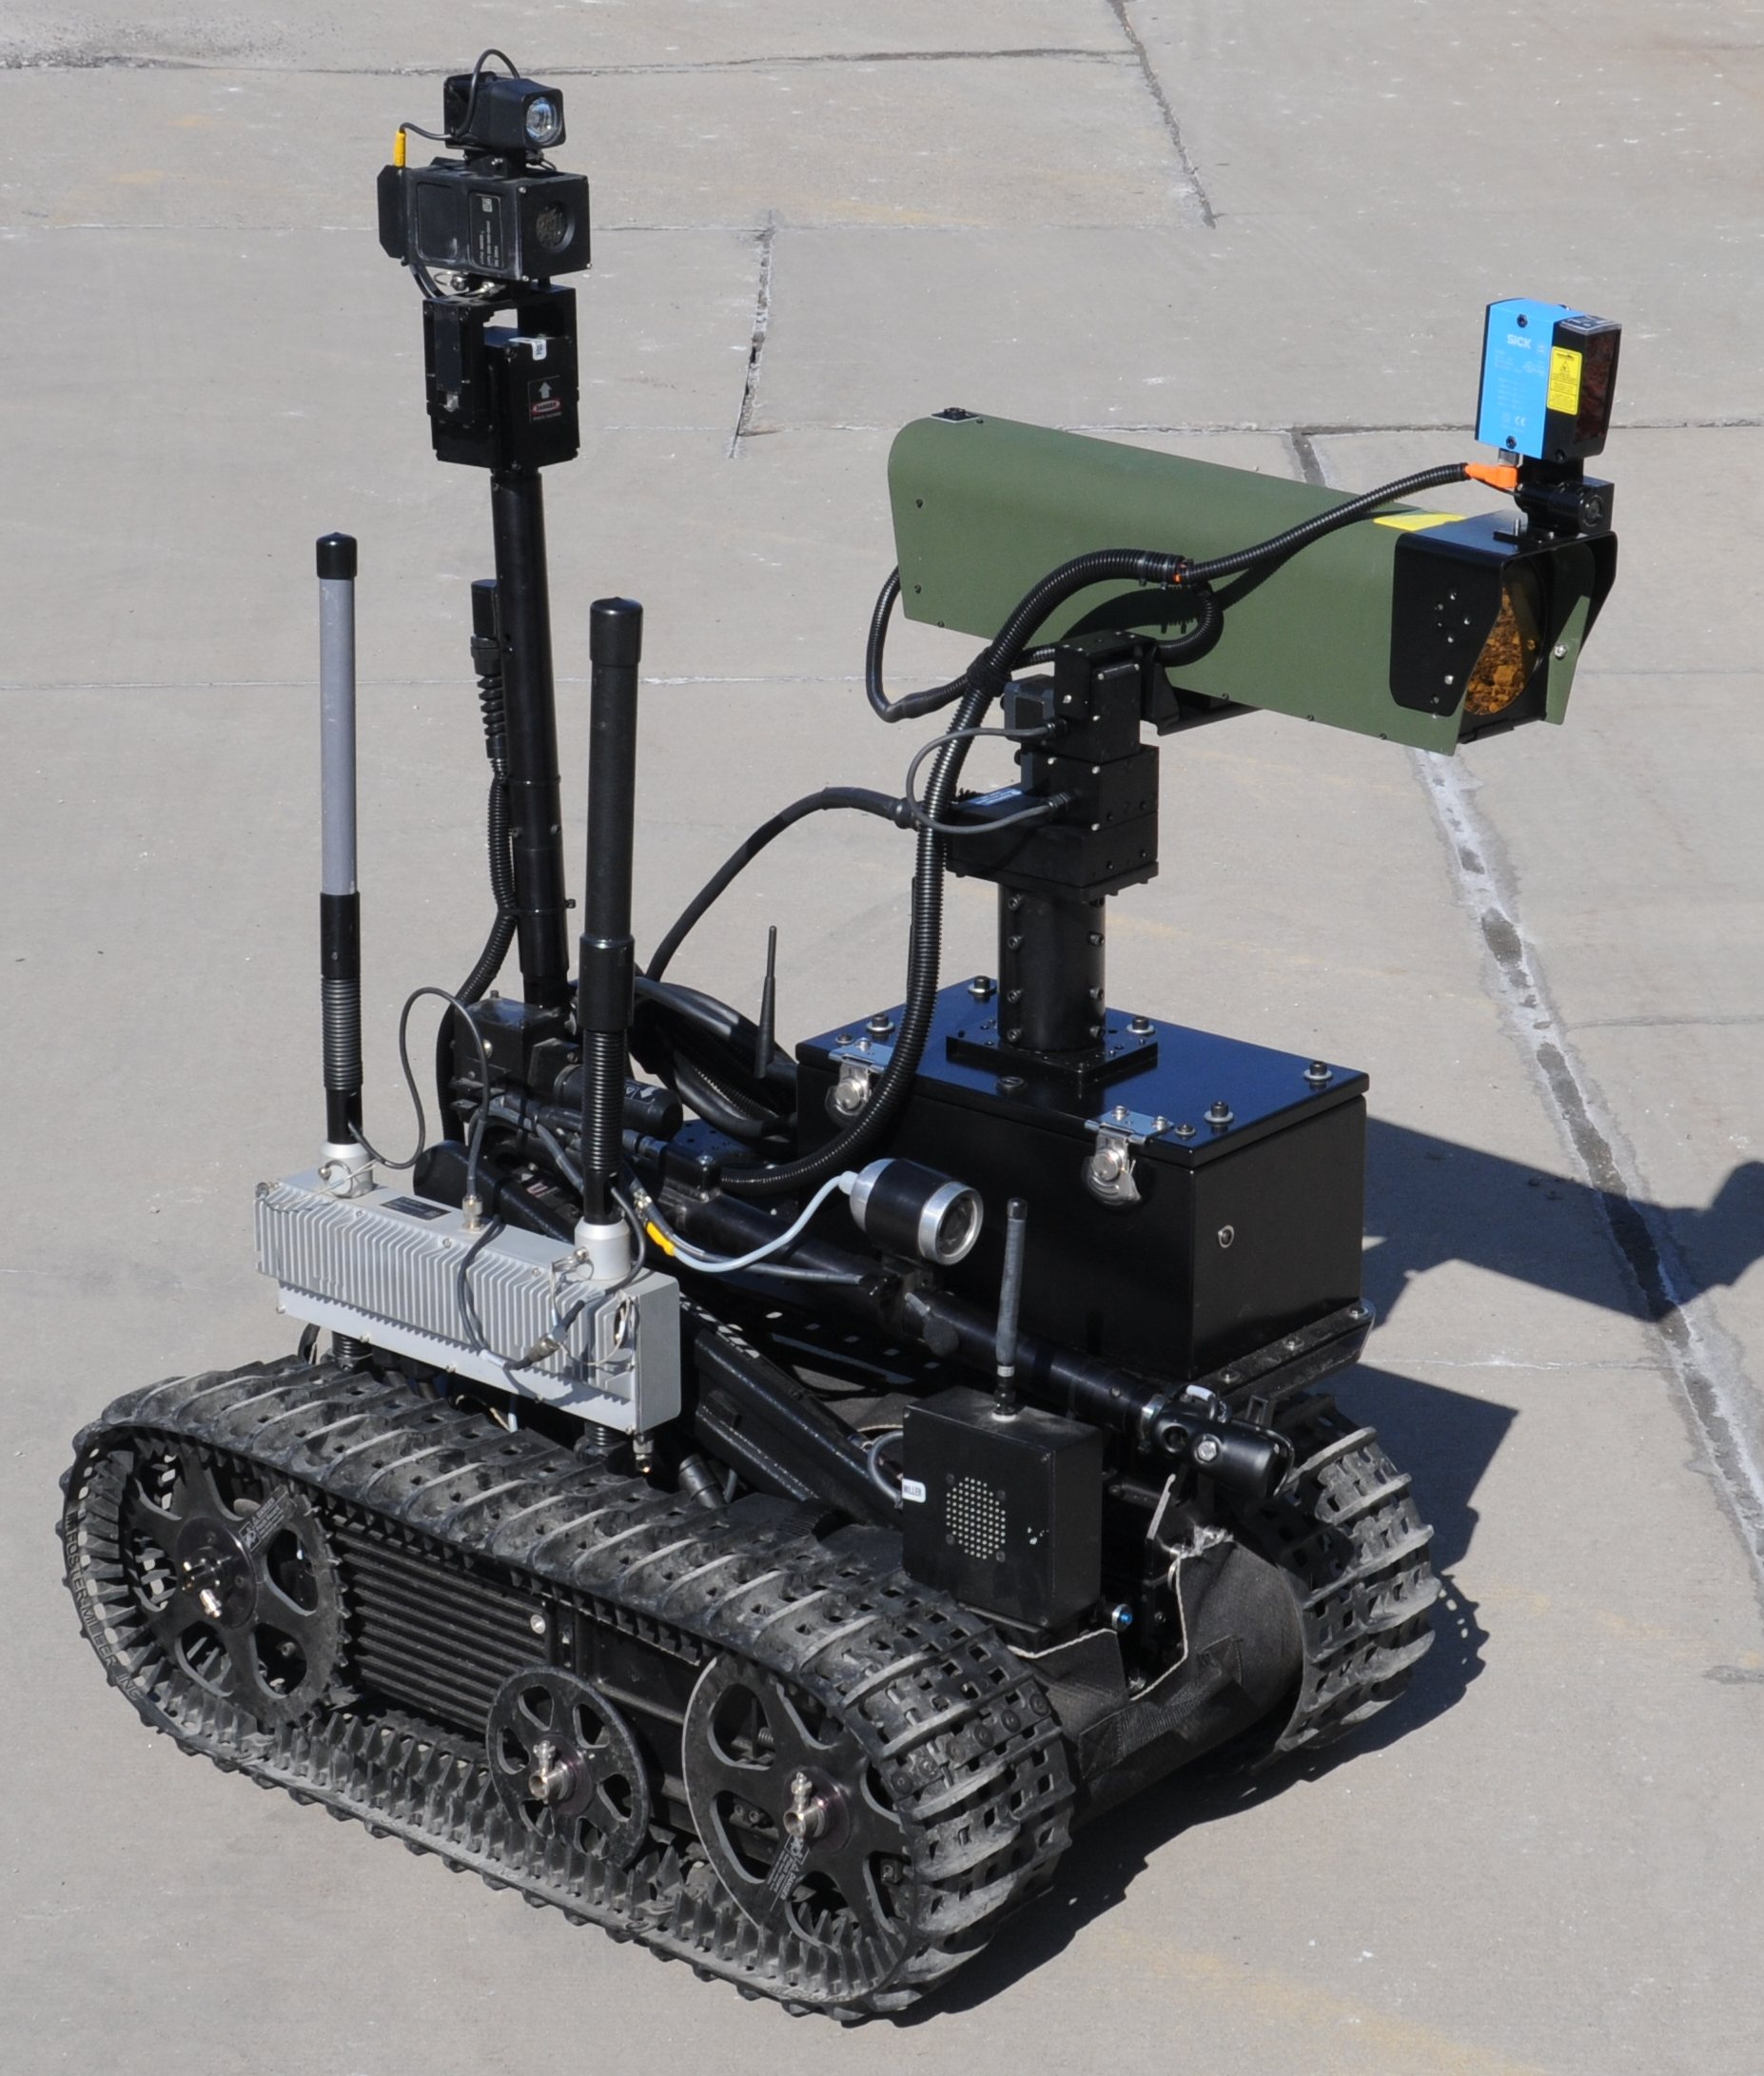 Robot with stand-off explosives detector